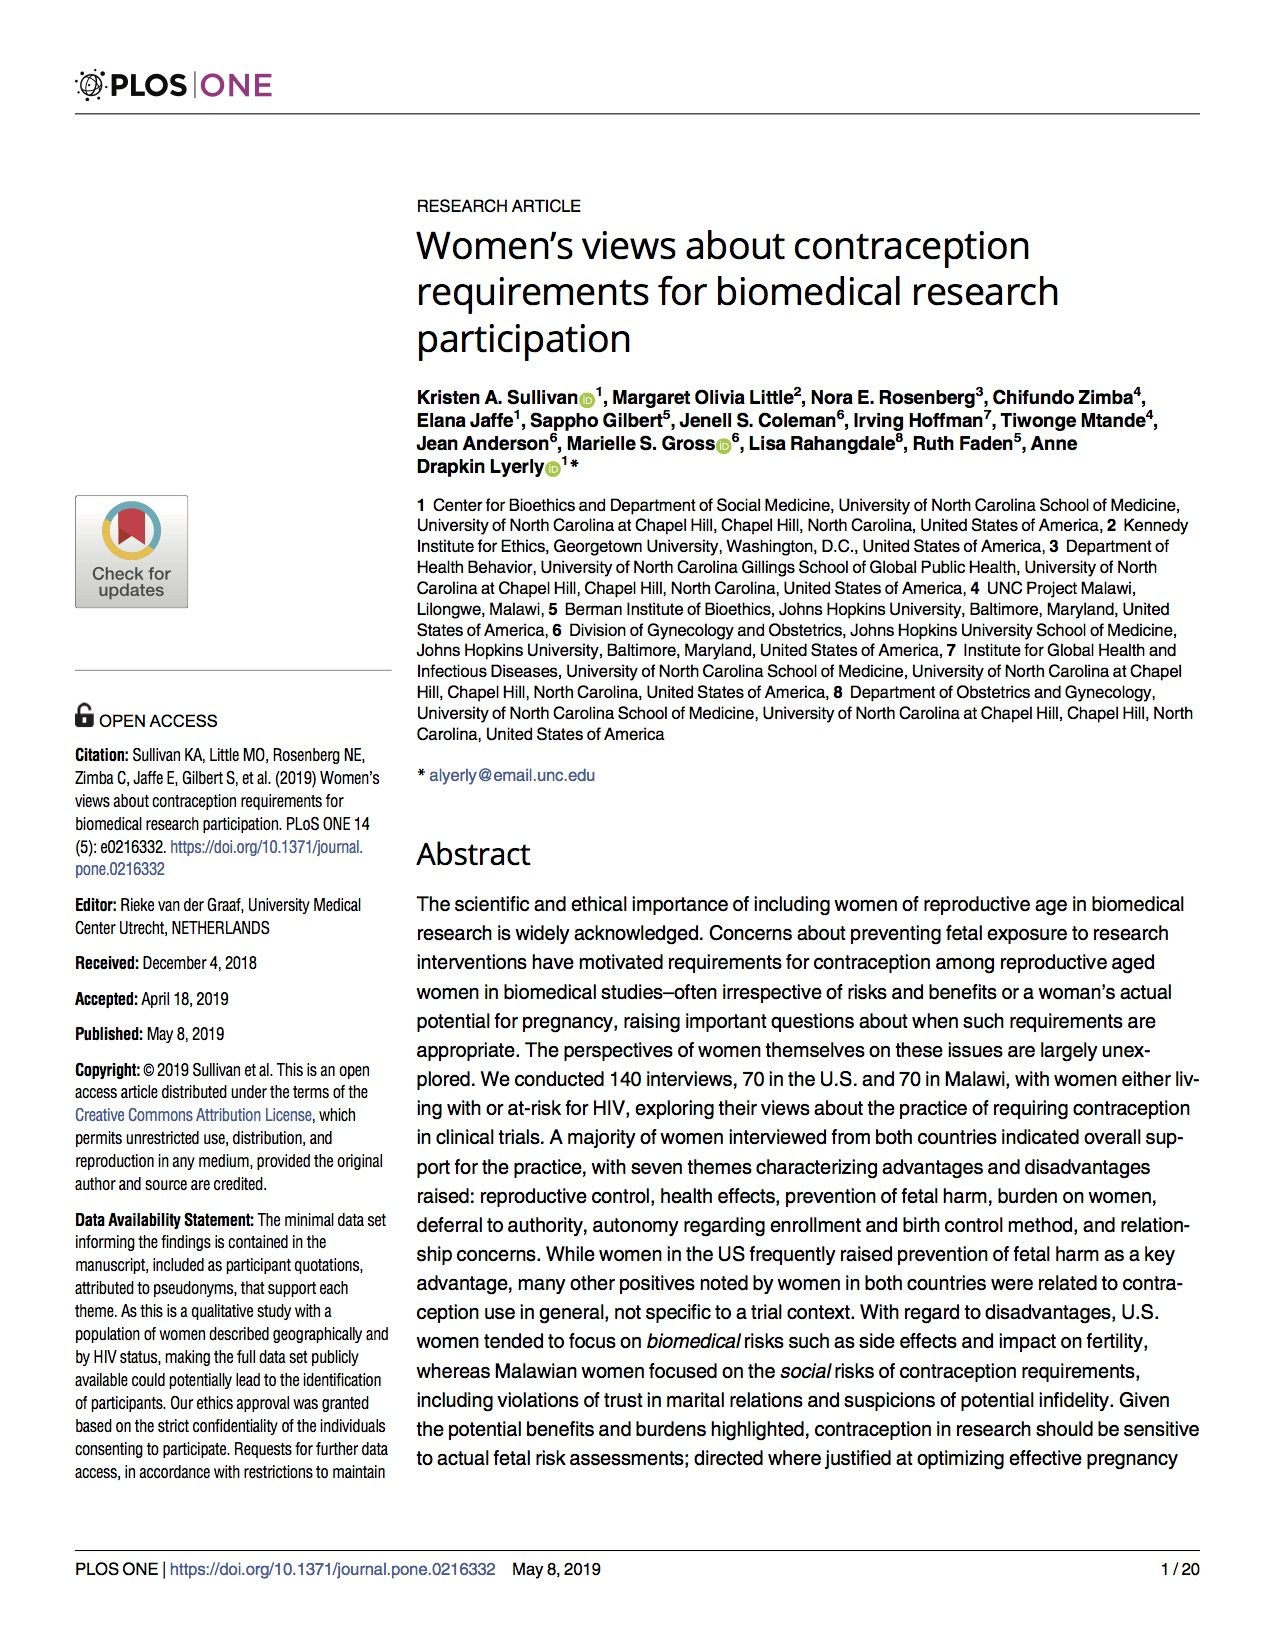 Sullivan.2019.Plos One.Women's views about contraception requirements for biomedical research participation copy.jpg